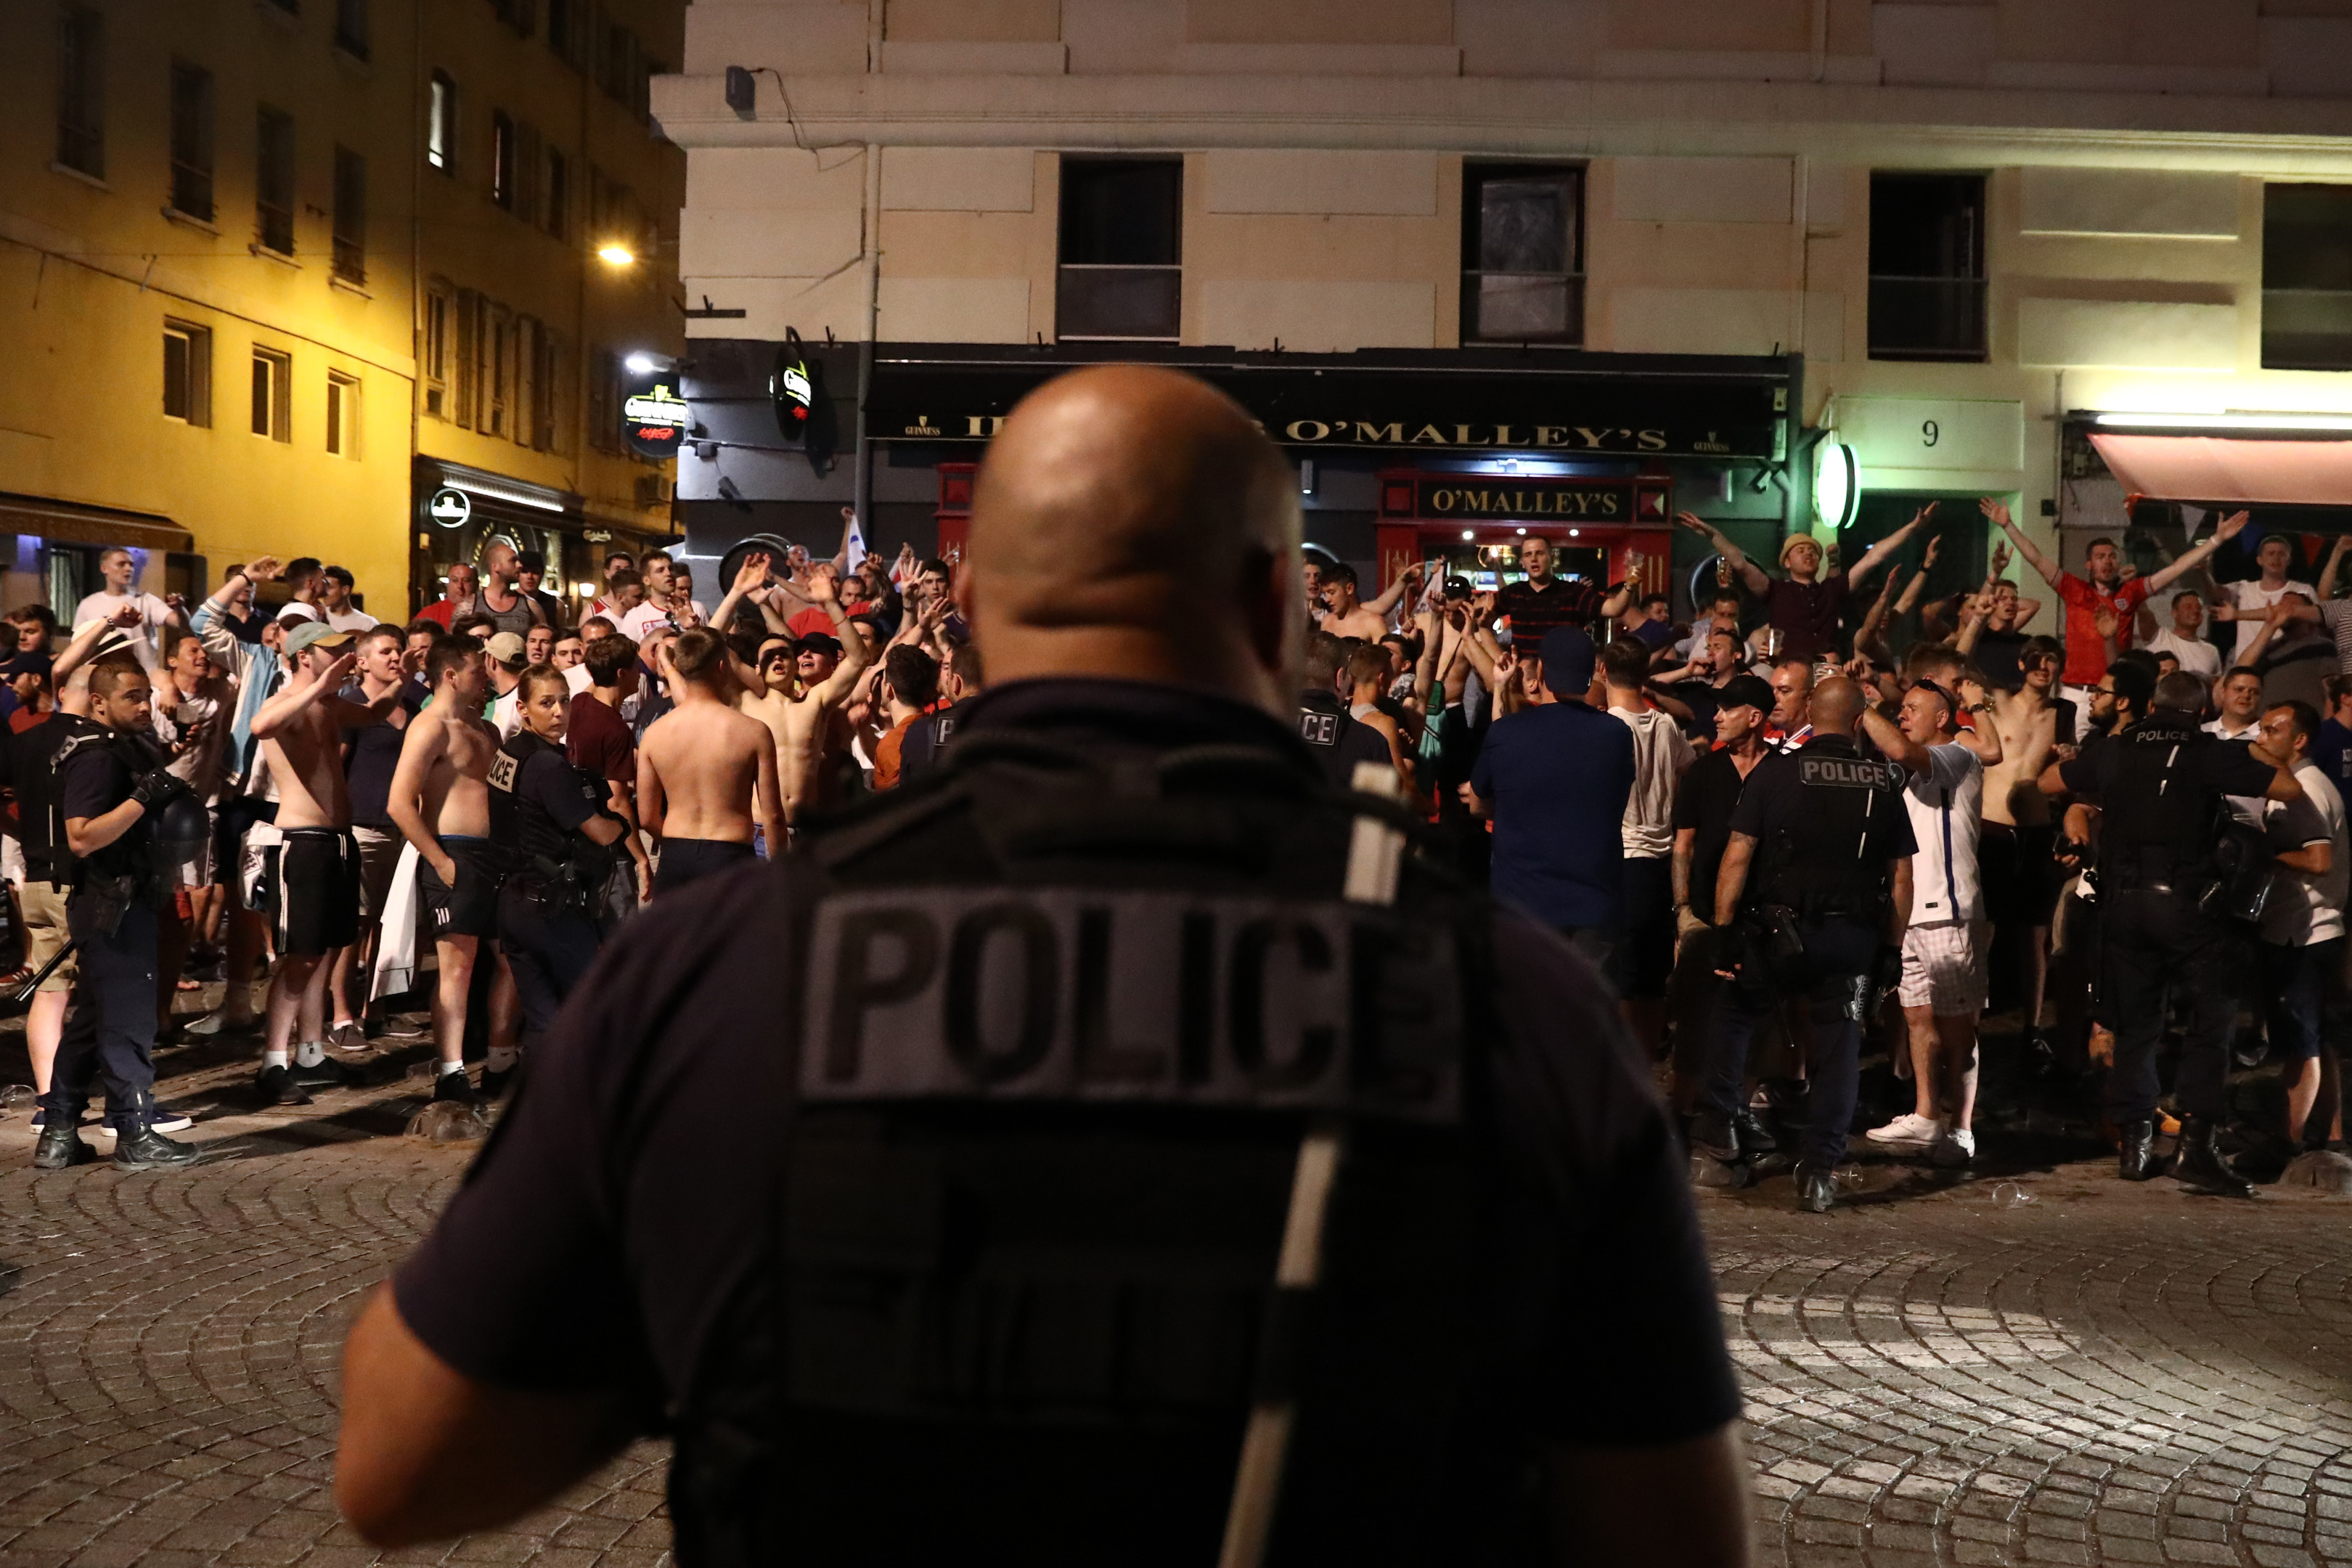 England fans chanting outside a bar in Marseille.